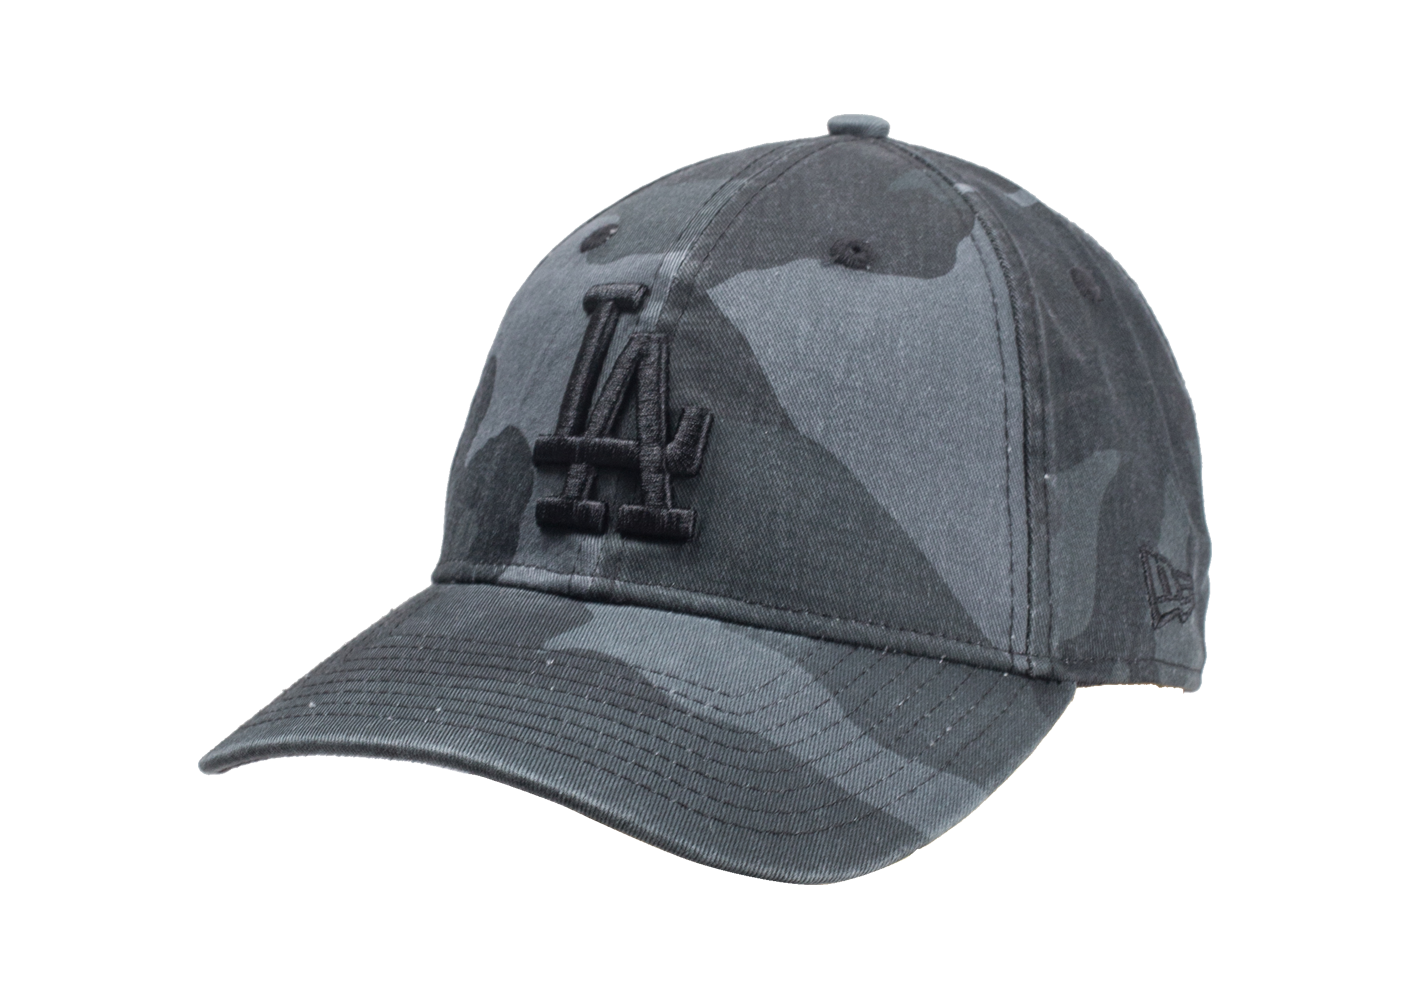 New Era Homme Casquette 9/40 Washed Camouflage Noire